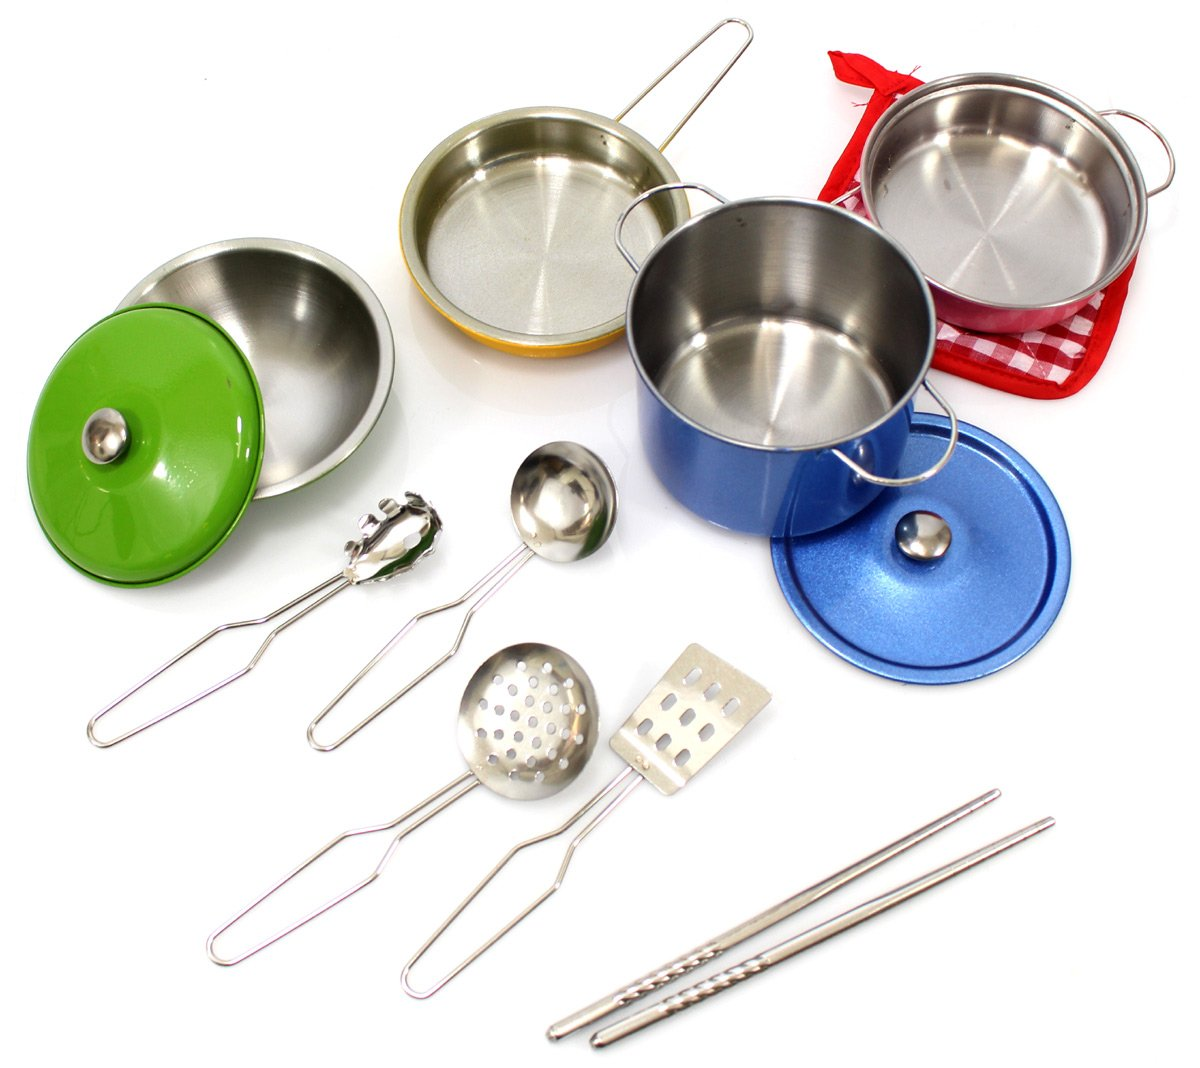 PowerTRC Colorful Metal Pots and Pans Cookware with Utensils Playset for Kids by PowerTRC